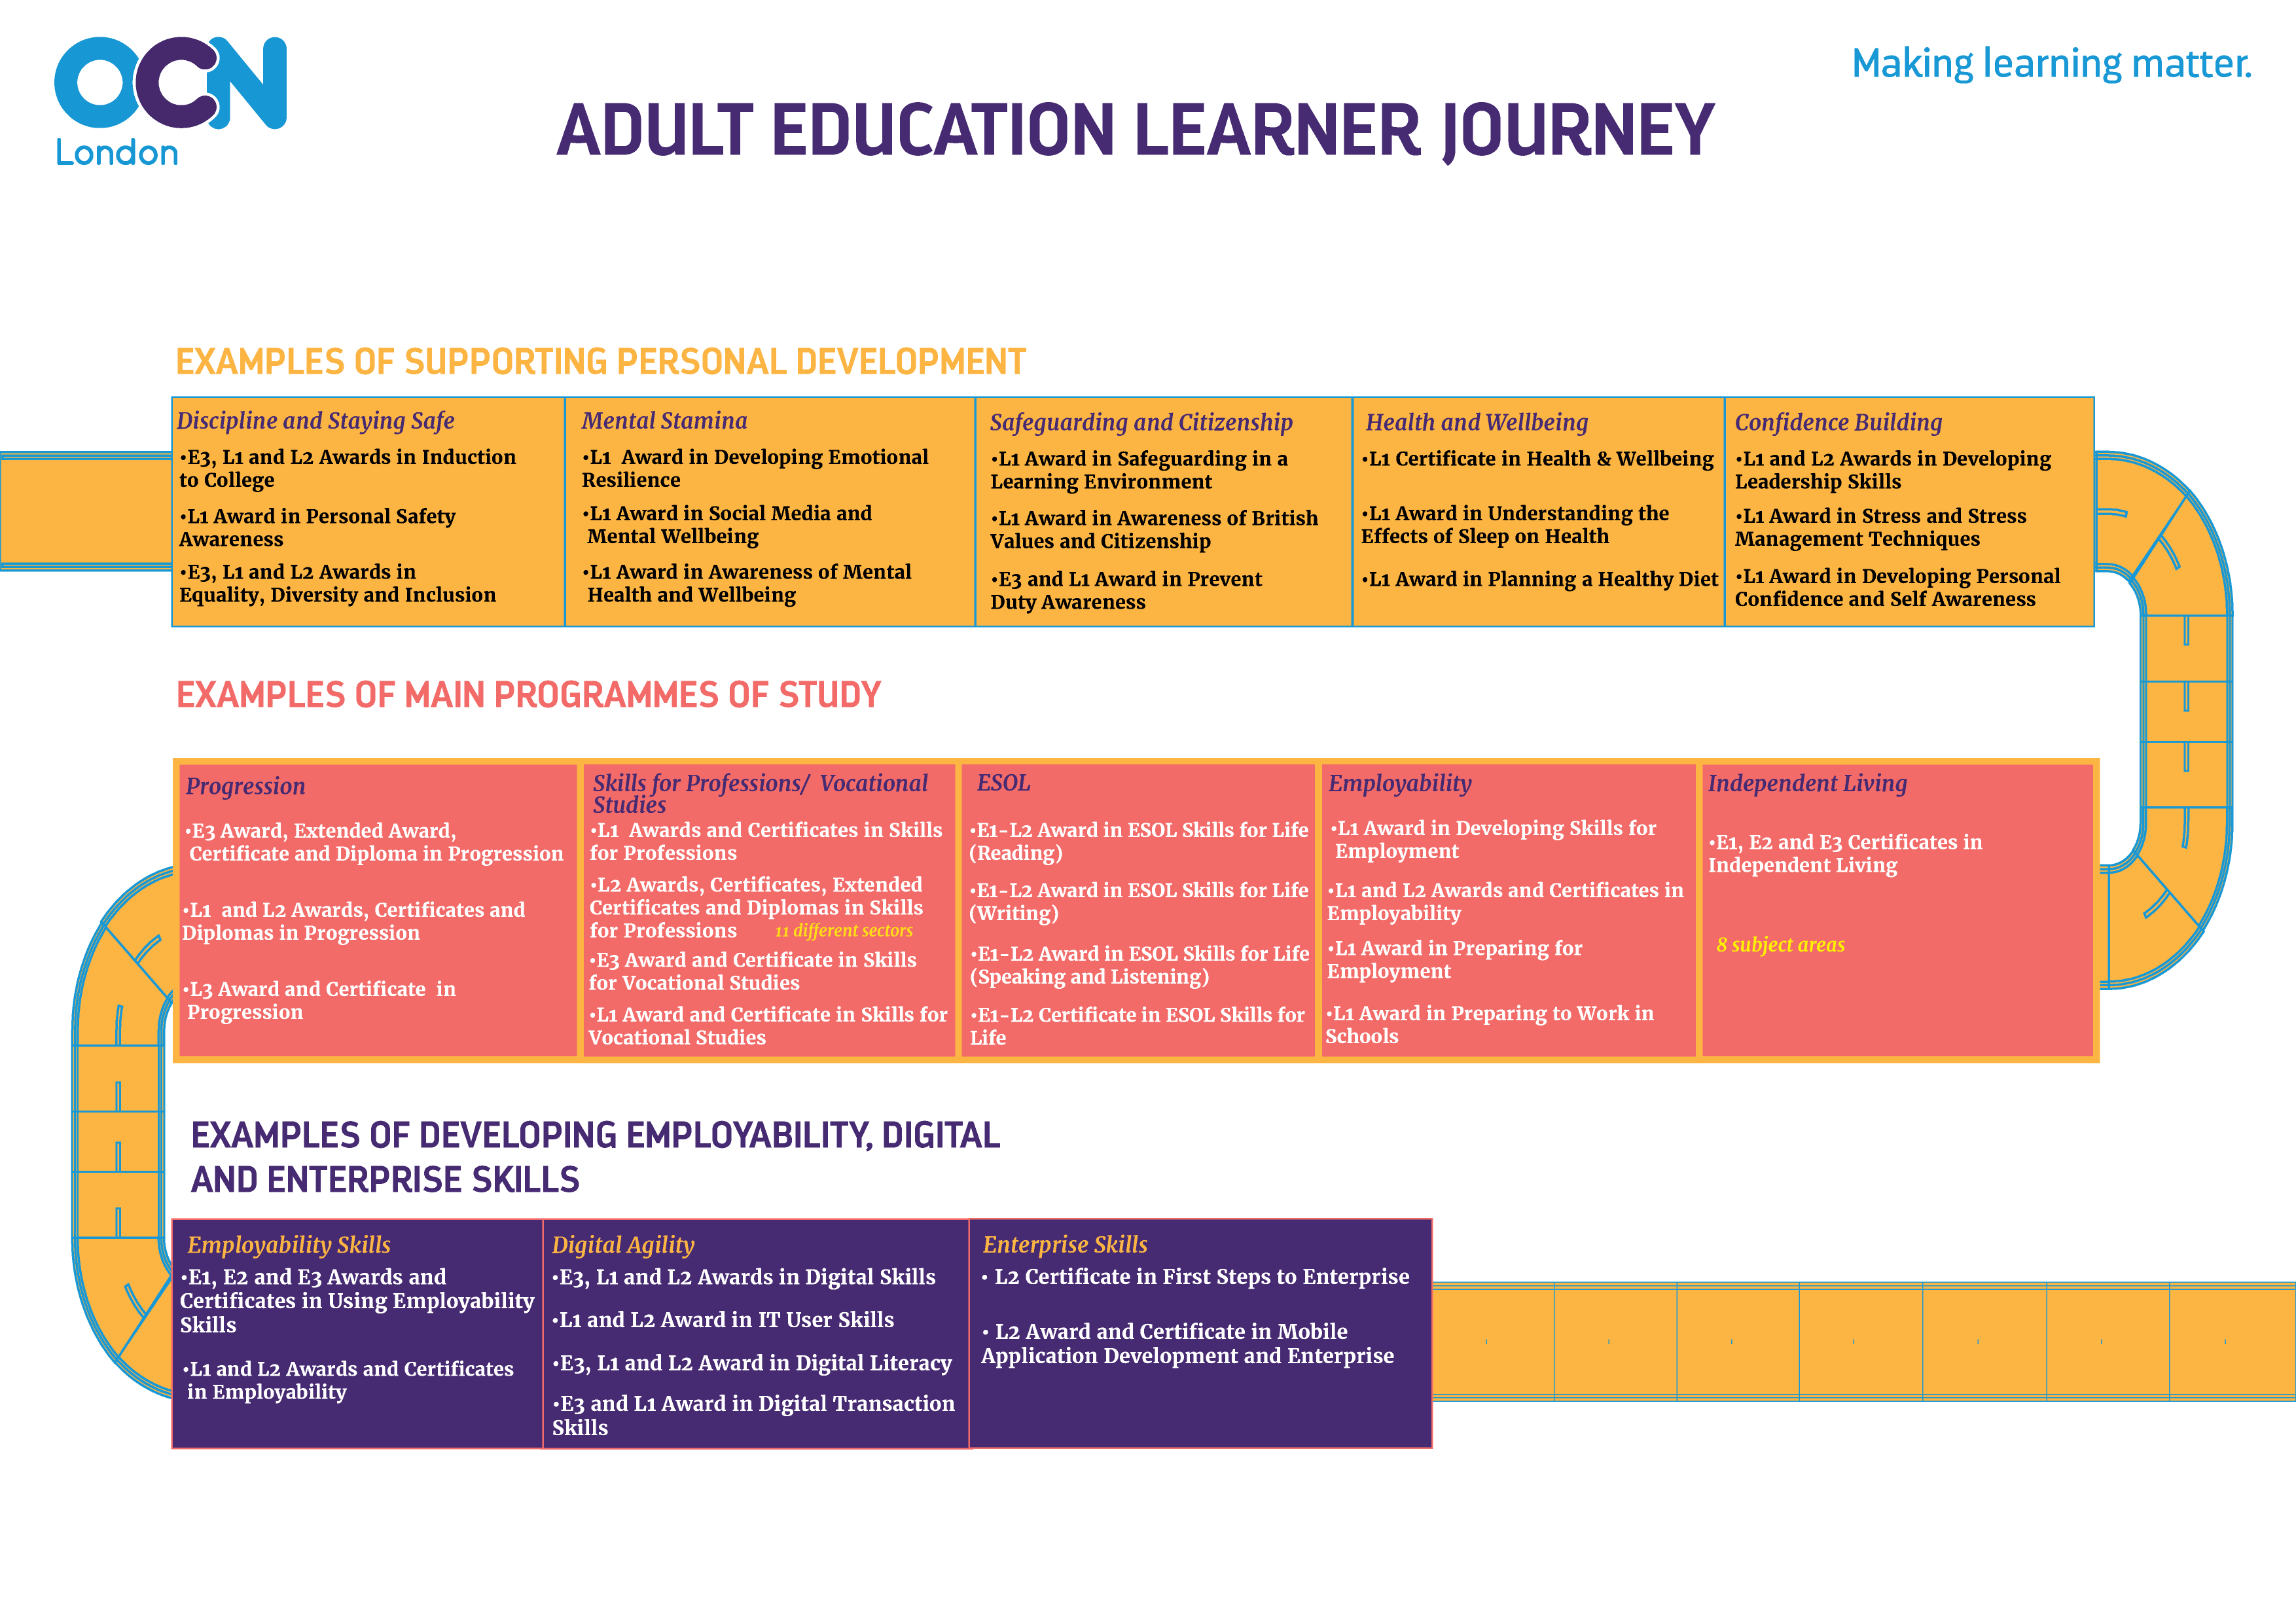 Adult Education Learner Journey